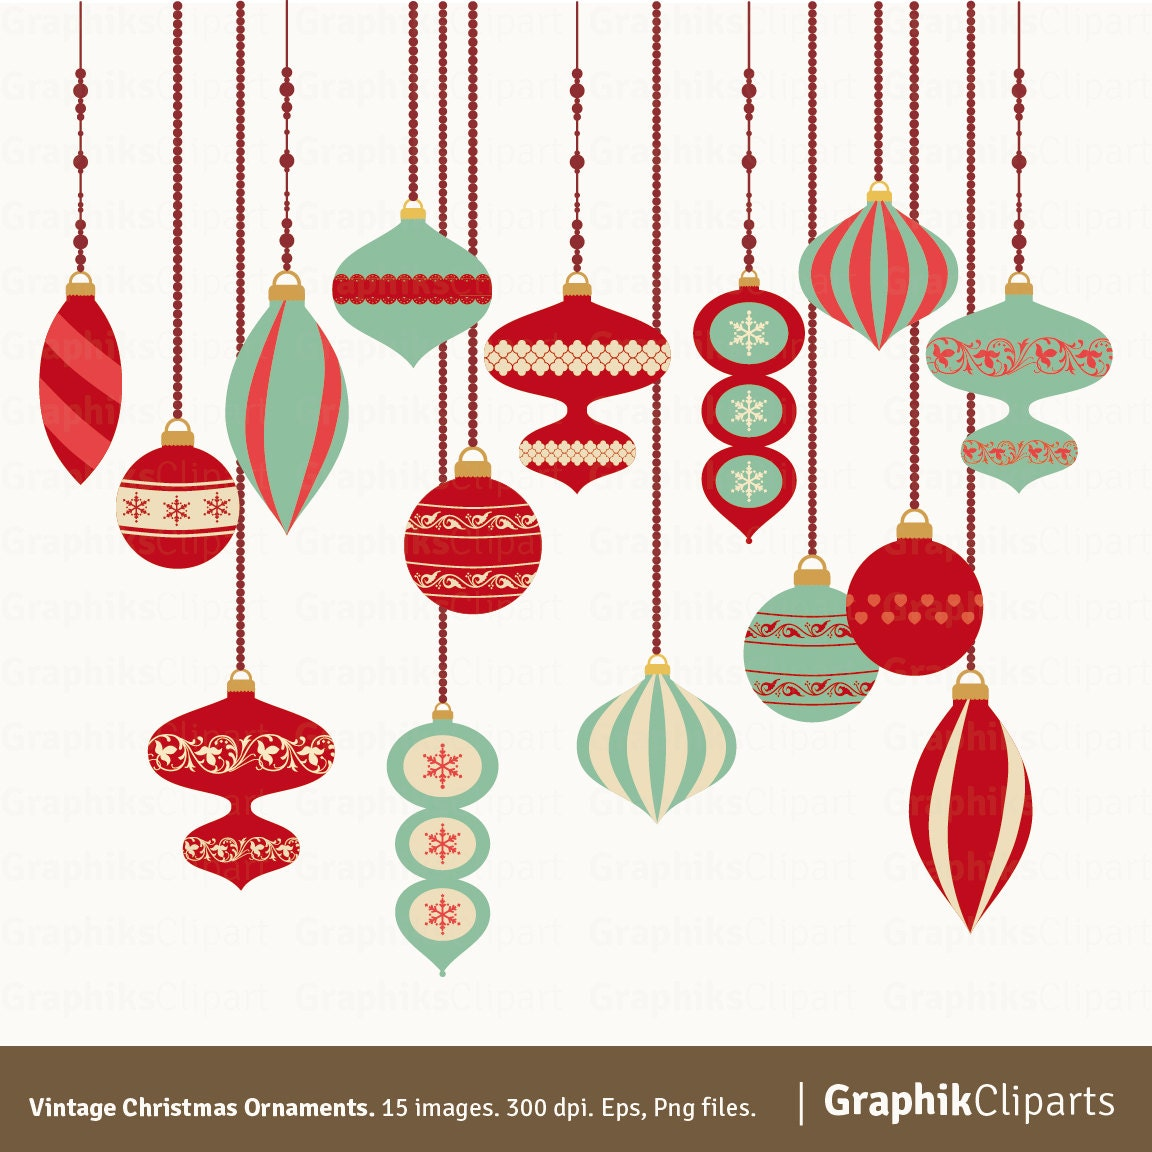 Vintage Christmas Ornaments Clipart. Christmas Clipart.